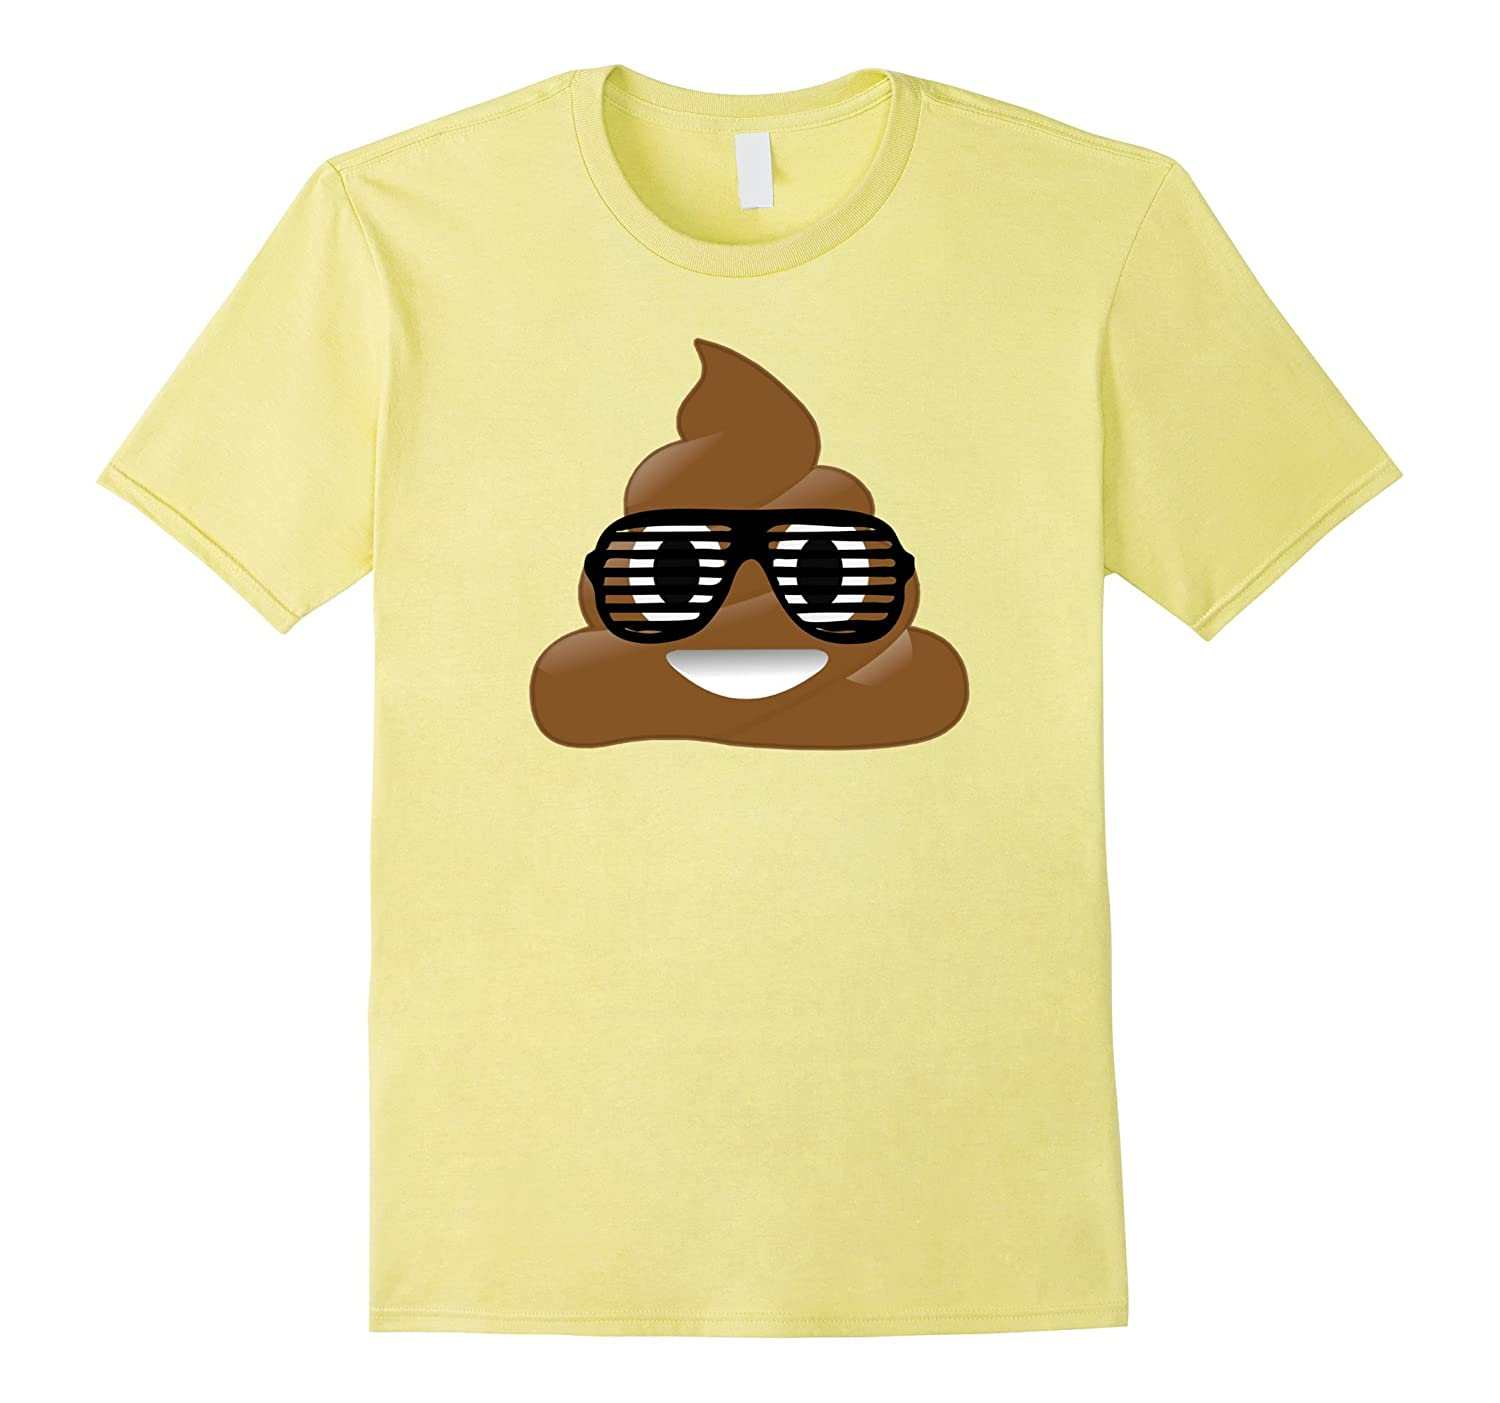 Poop Emoji Shirt Shutter Shades Cool Poo With 80s Glasses